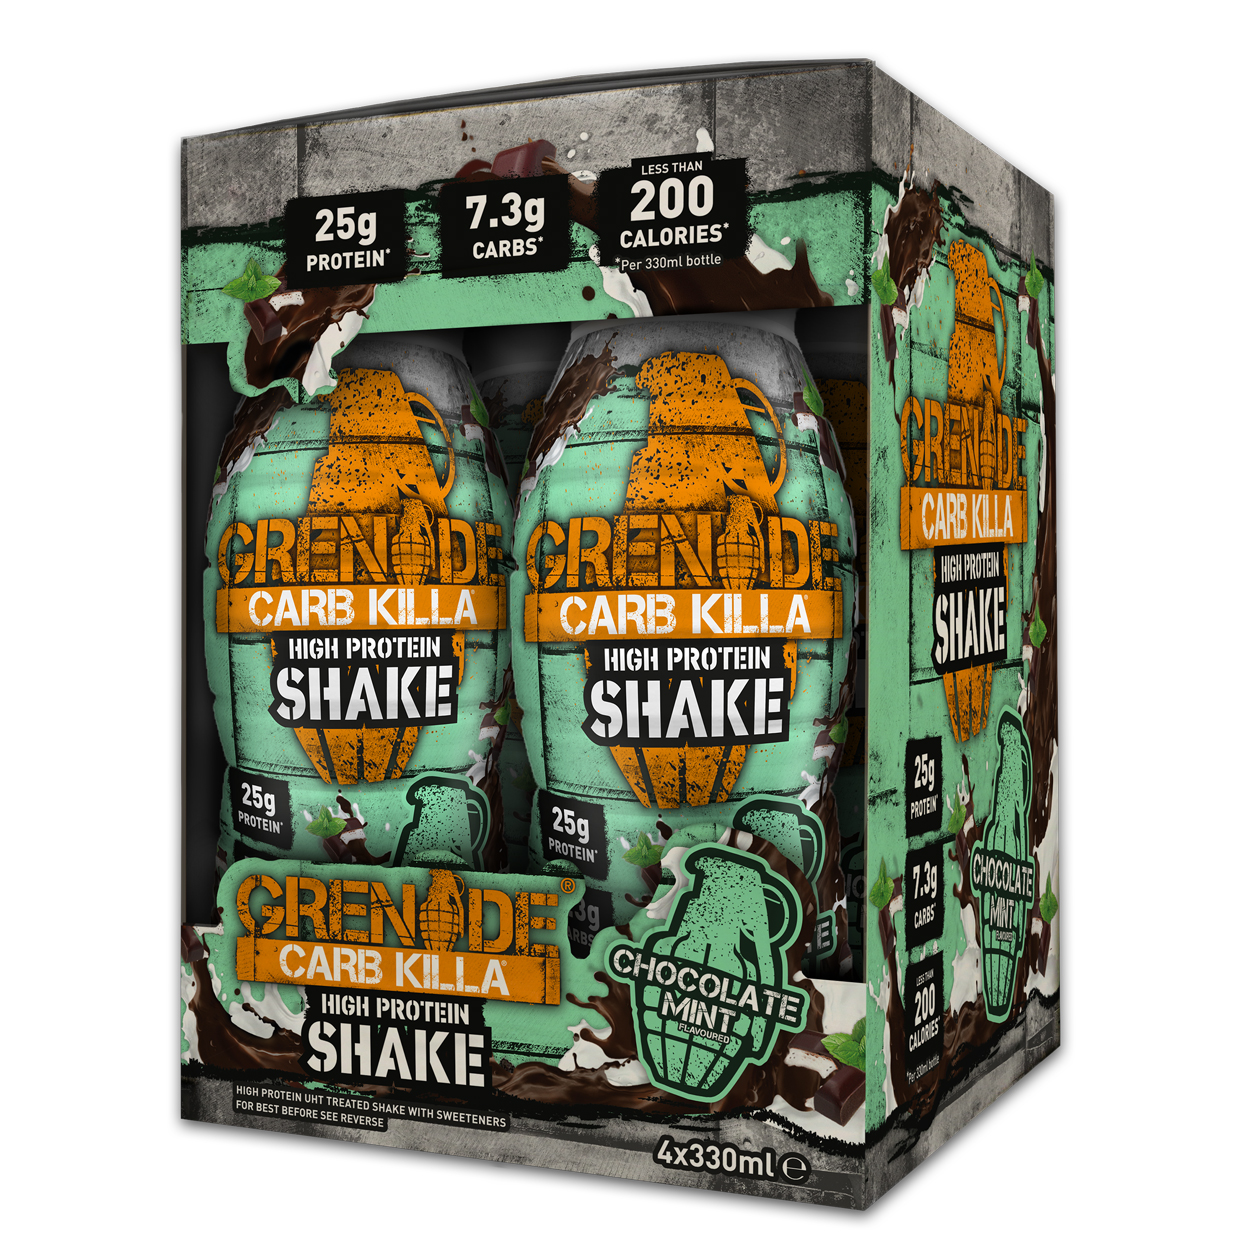 Grenade Carb Killa High Protein Shake (4x330ml) | Protein bar and powder